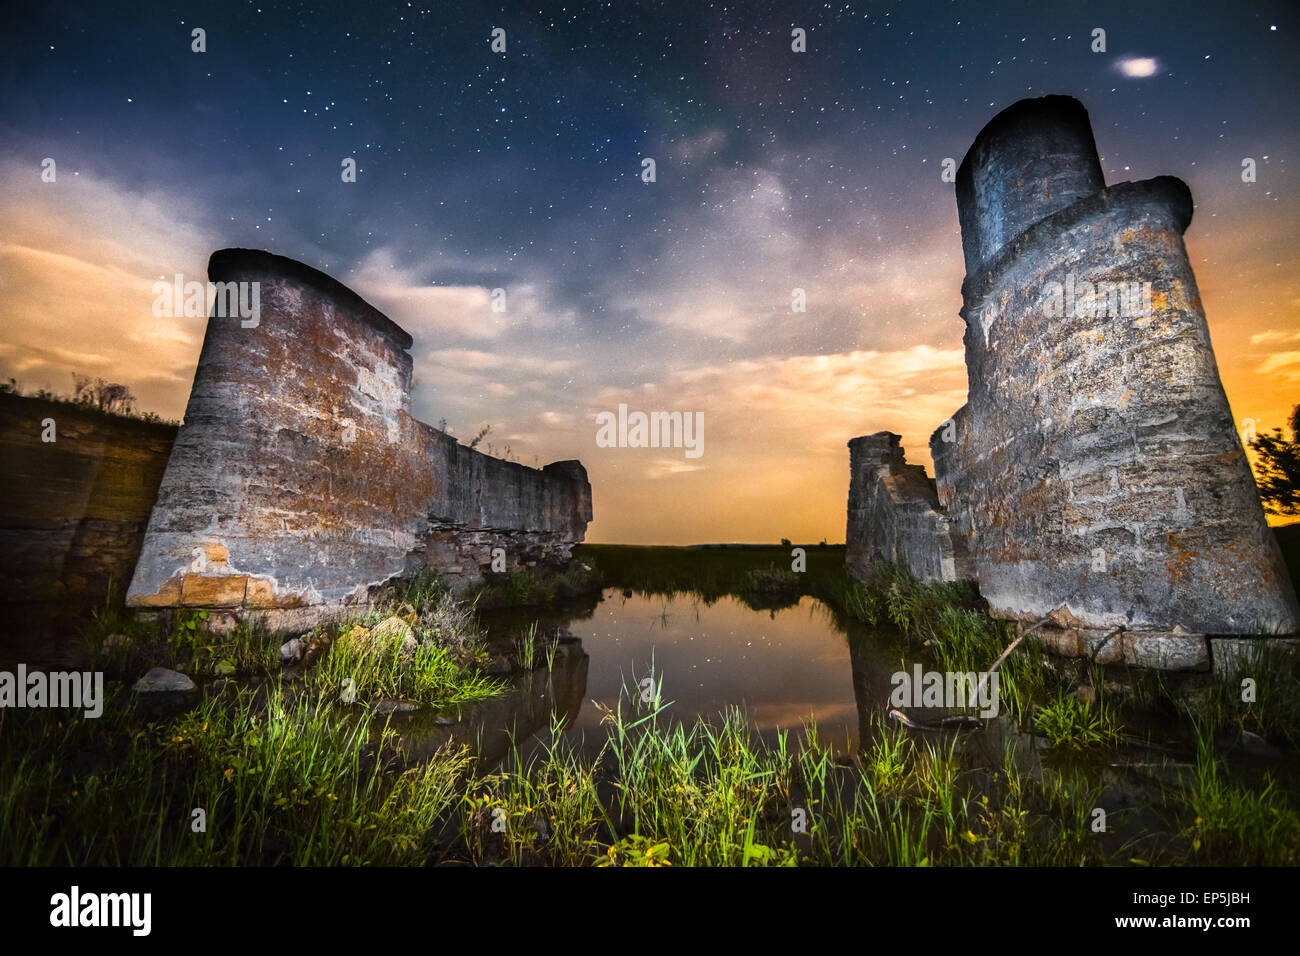 Old night castle wall ruins on lake reflections with stars sky - Stock Image